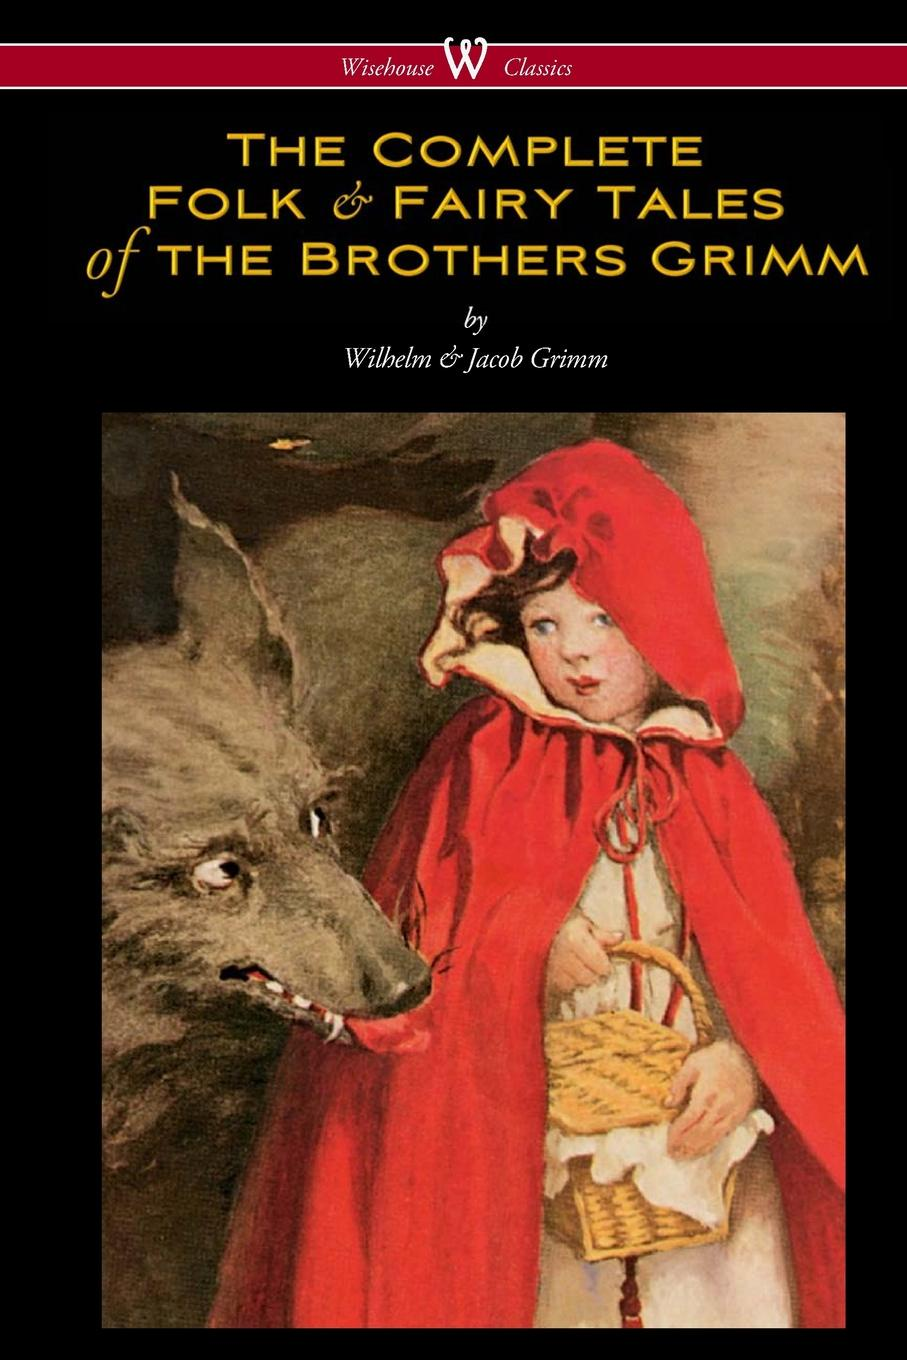 Wilhelm Grimm, Jacob Grimm The Complete Folk & Fairy Tales of the Brothers Grimm (Wisehouse Classics - The Complete and Authoritative Edition) jacobs j english fairy tales